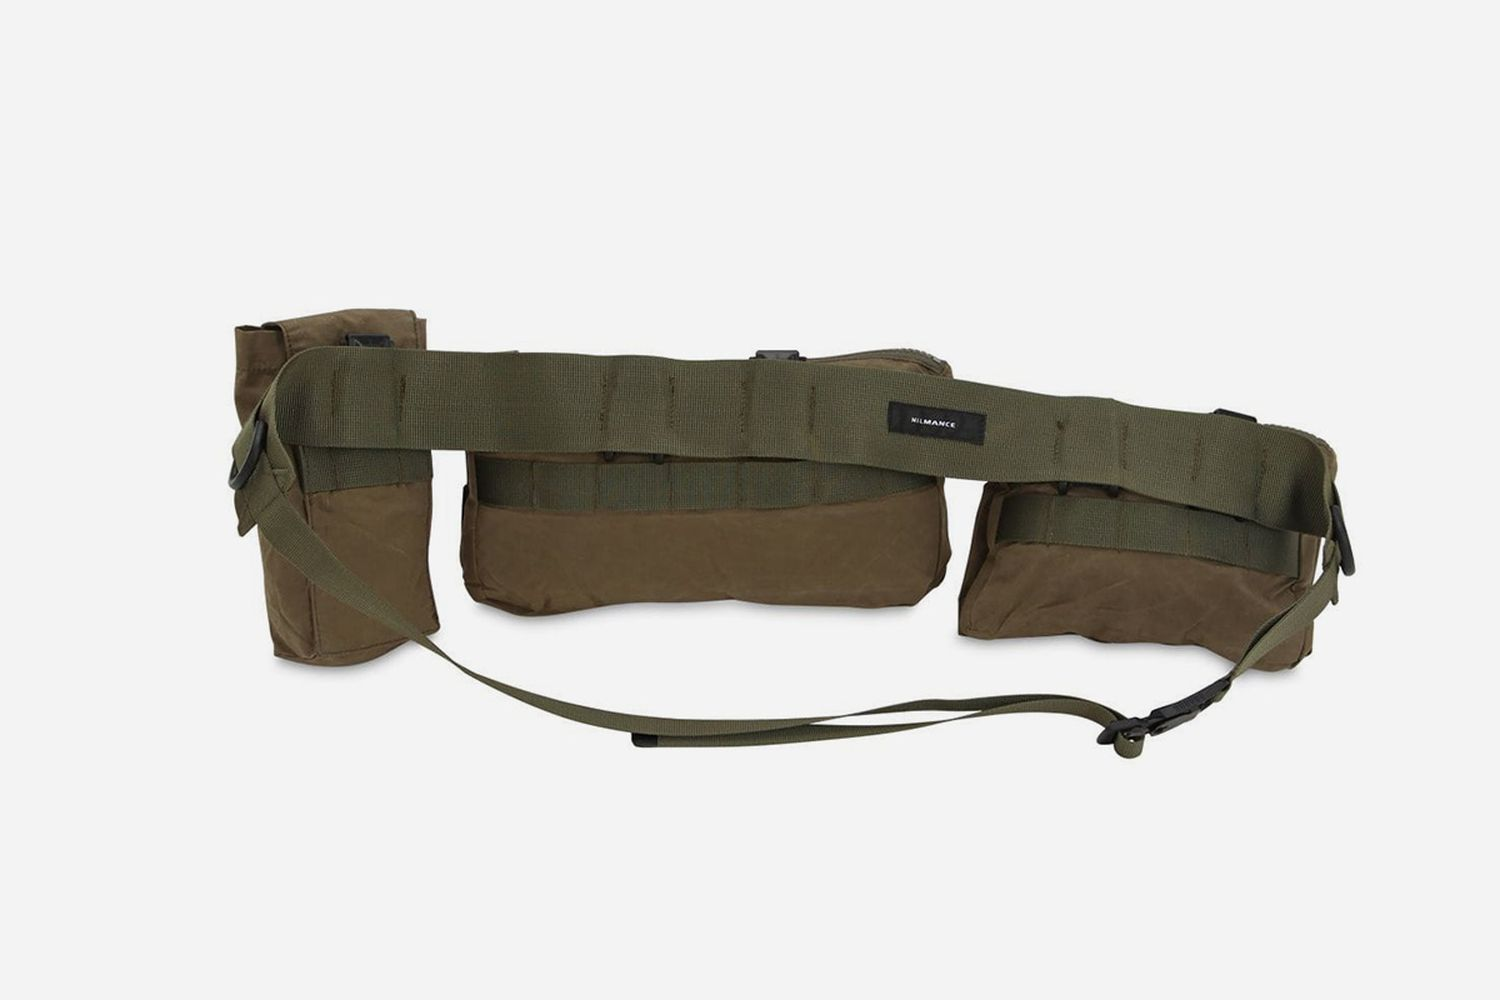 Military Pocket Belt Bag